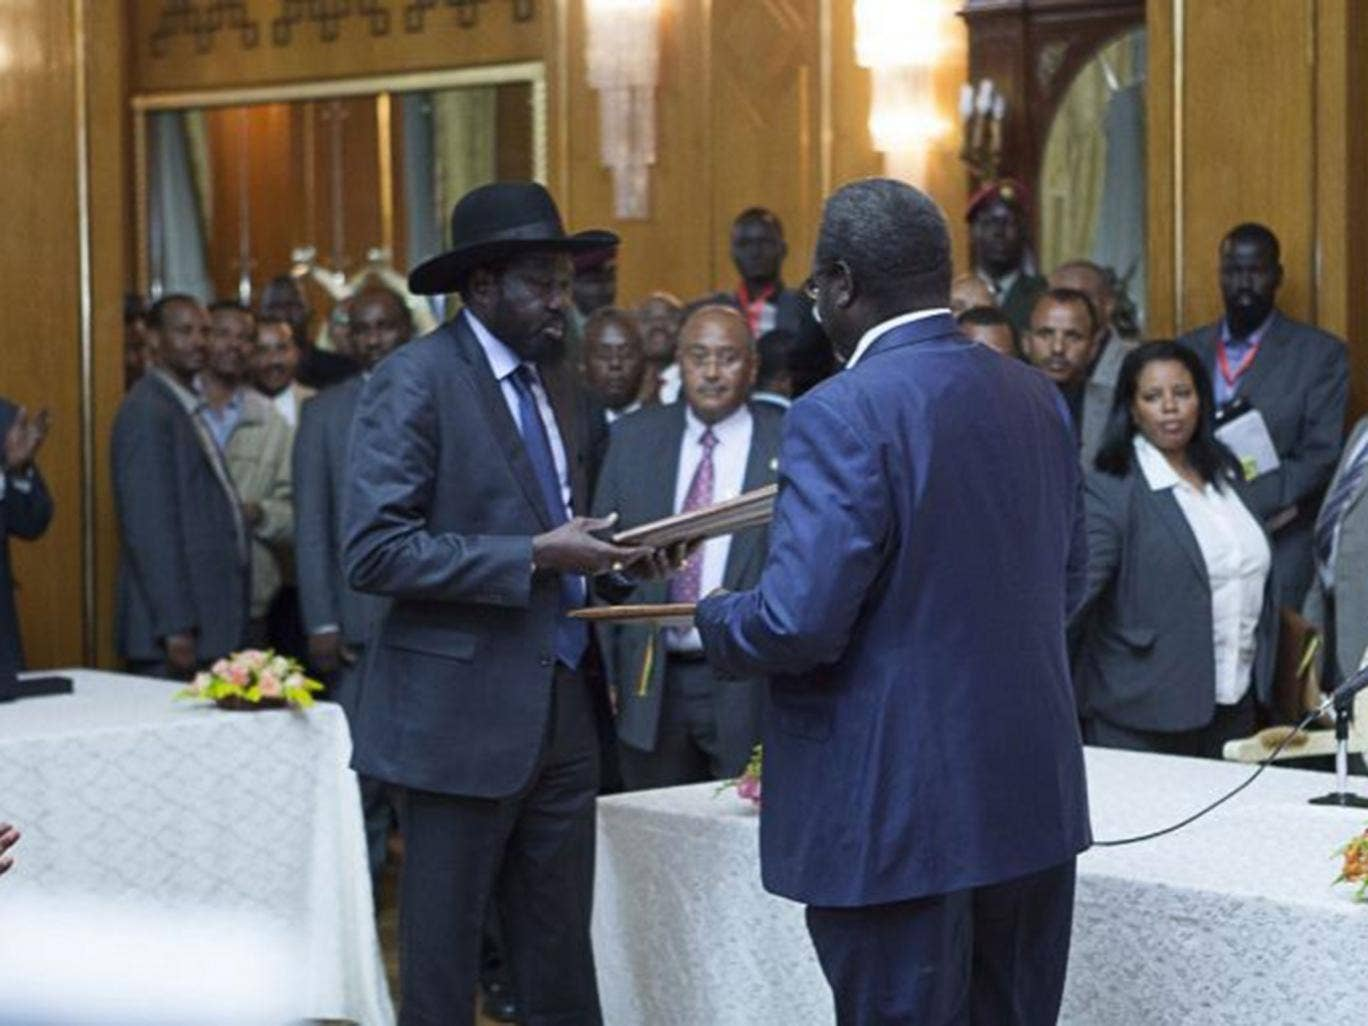 Salva Kiir (L), President of South Sudan, and Riek Machar (R), SPLM Opposition leader, hand over the Cessation of Hostilities treaty over the war in South Sudan